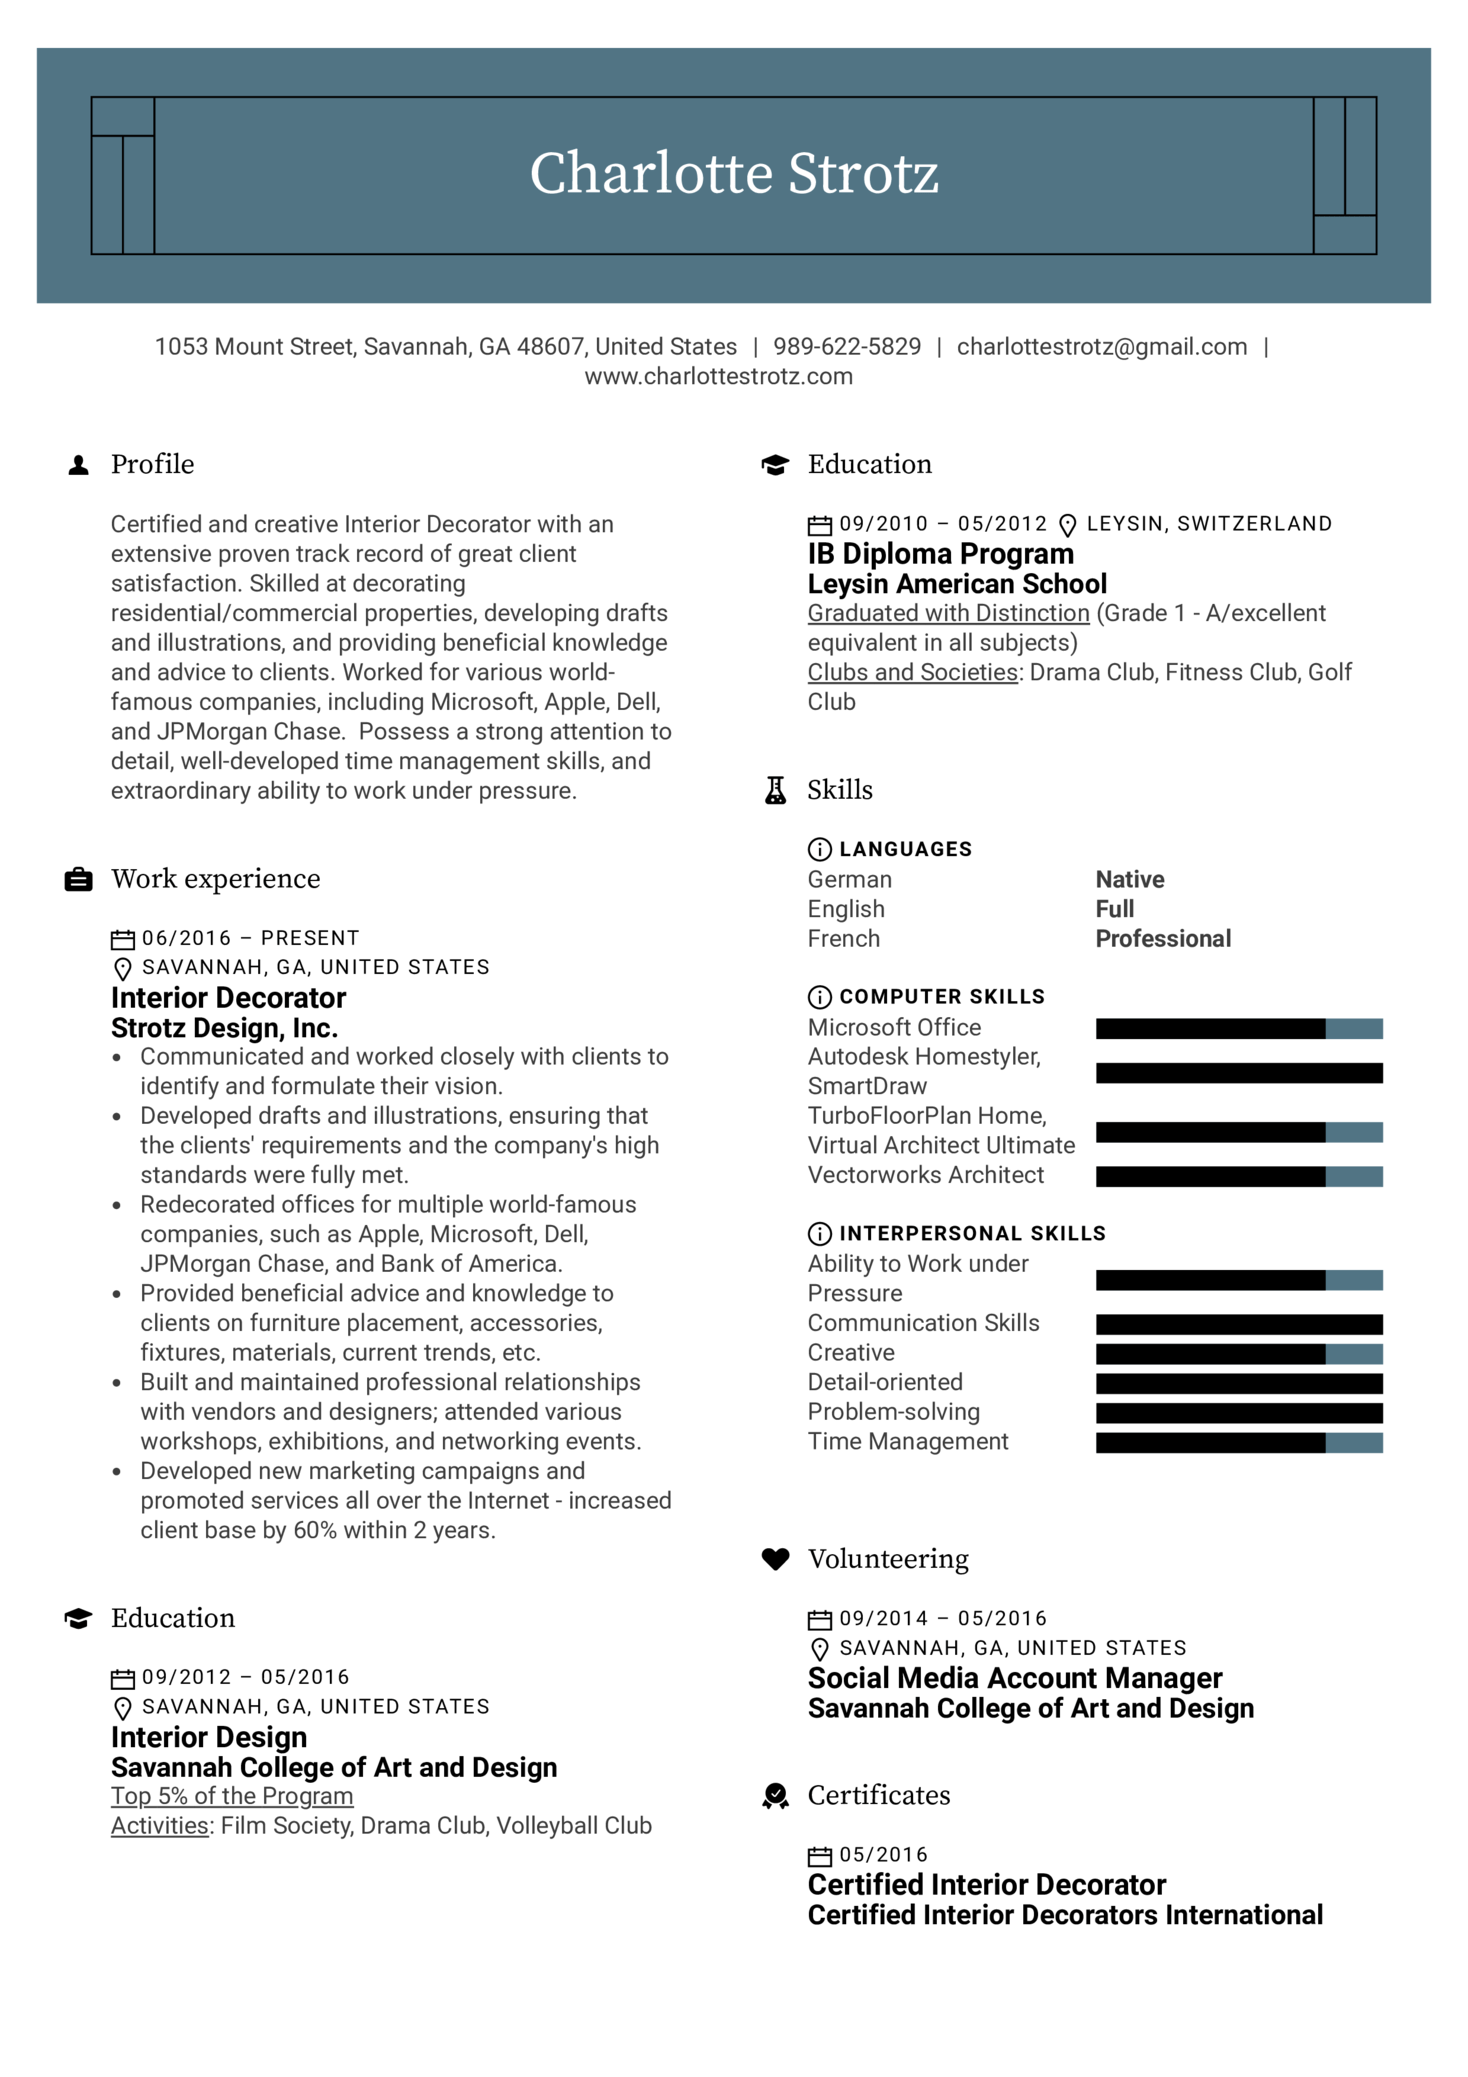 resume examples by real people  interior decorator resume